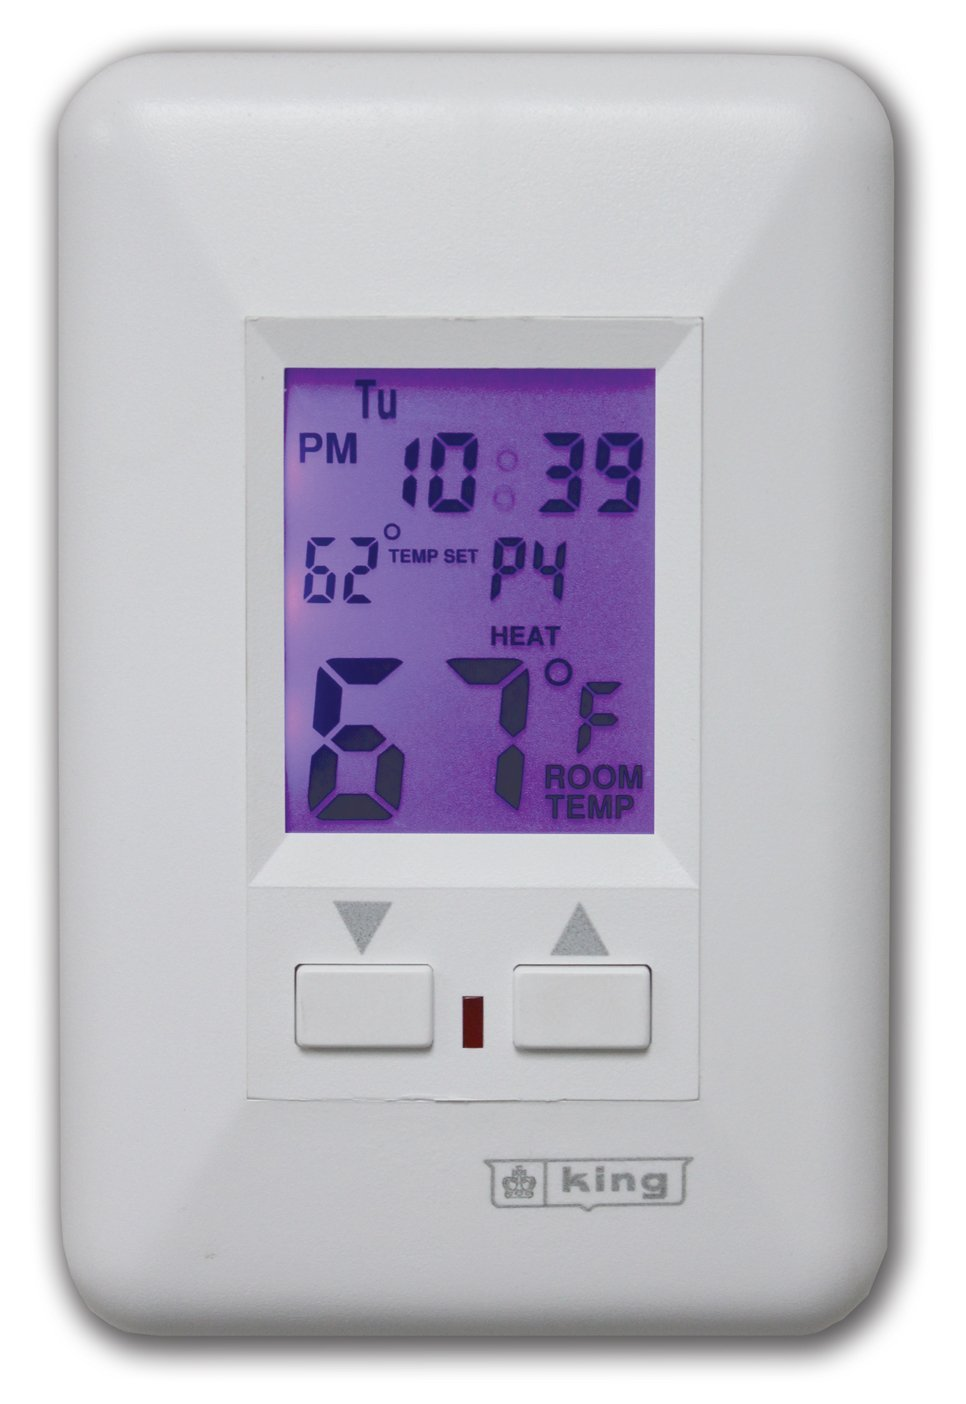 easy heat programmable thermostat manual